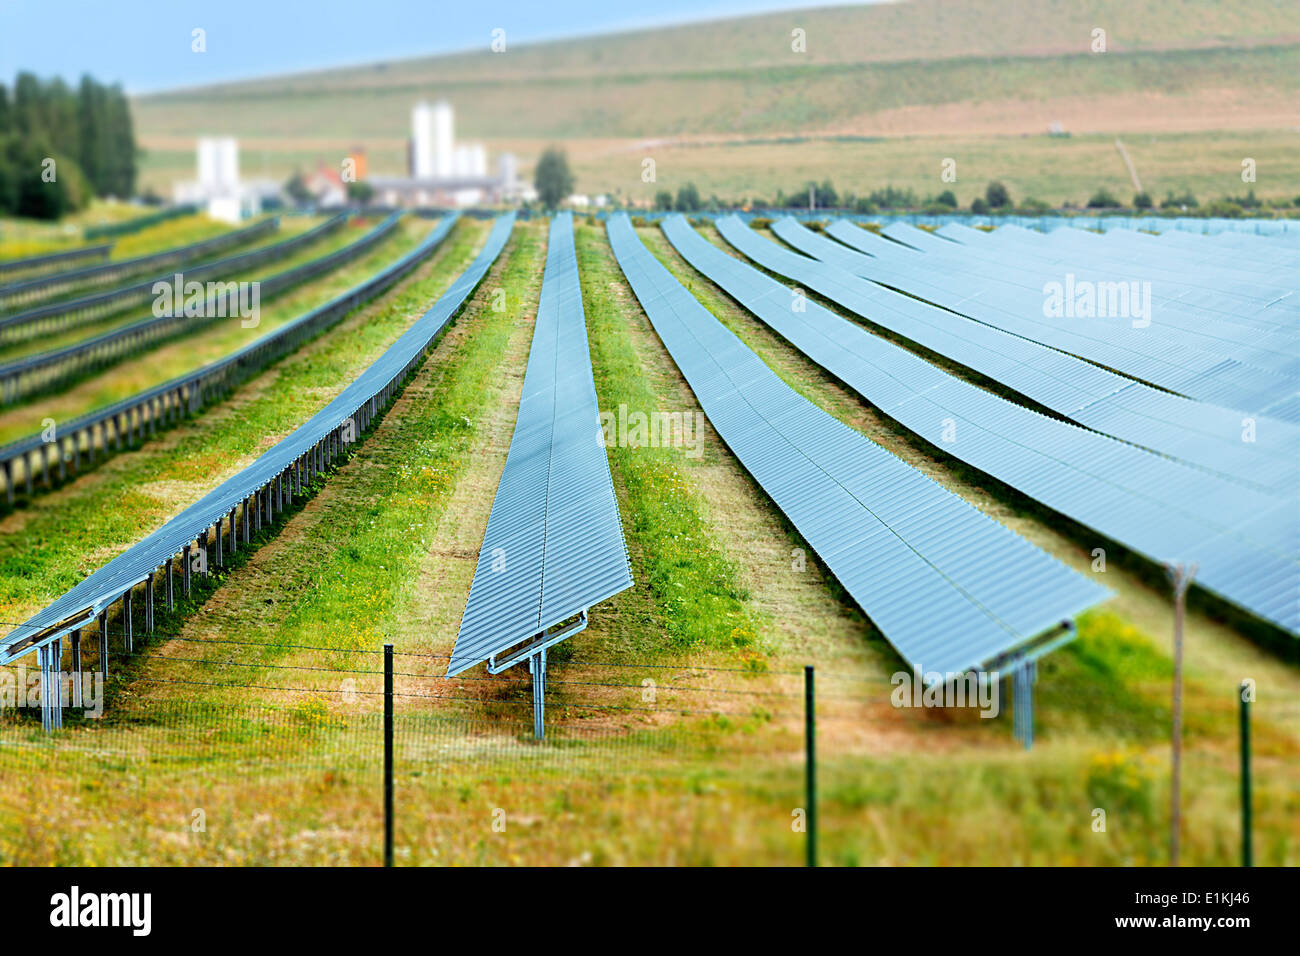 Solar panels in a row. - Stock Image